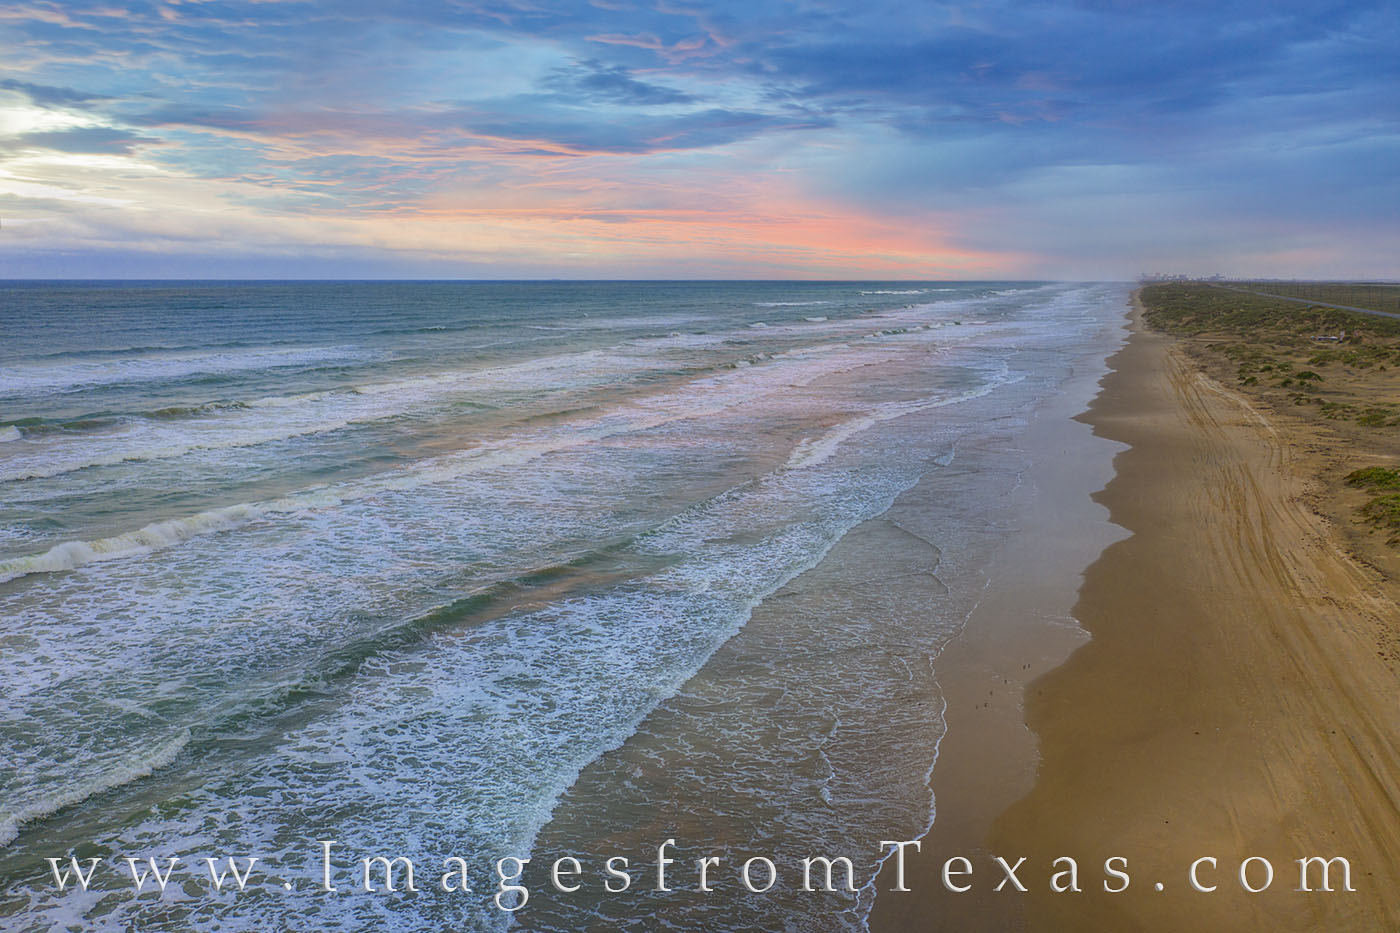 south padre island, sunrise, morning, drone, aerial, beach, sand, waves, surf, photo